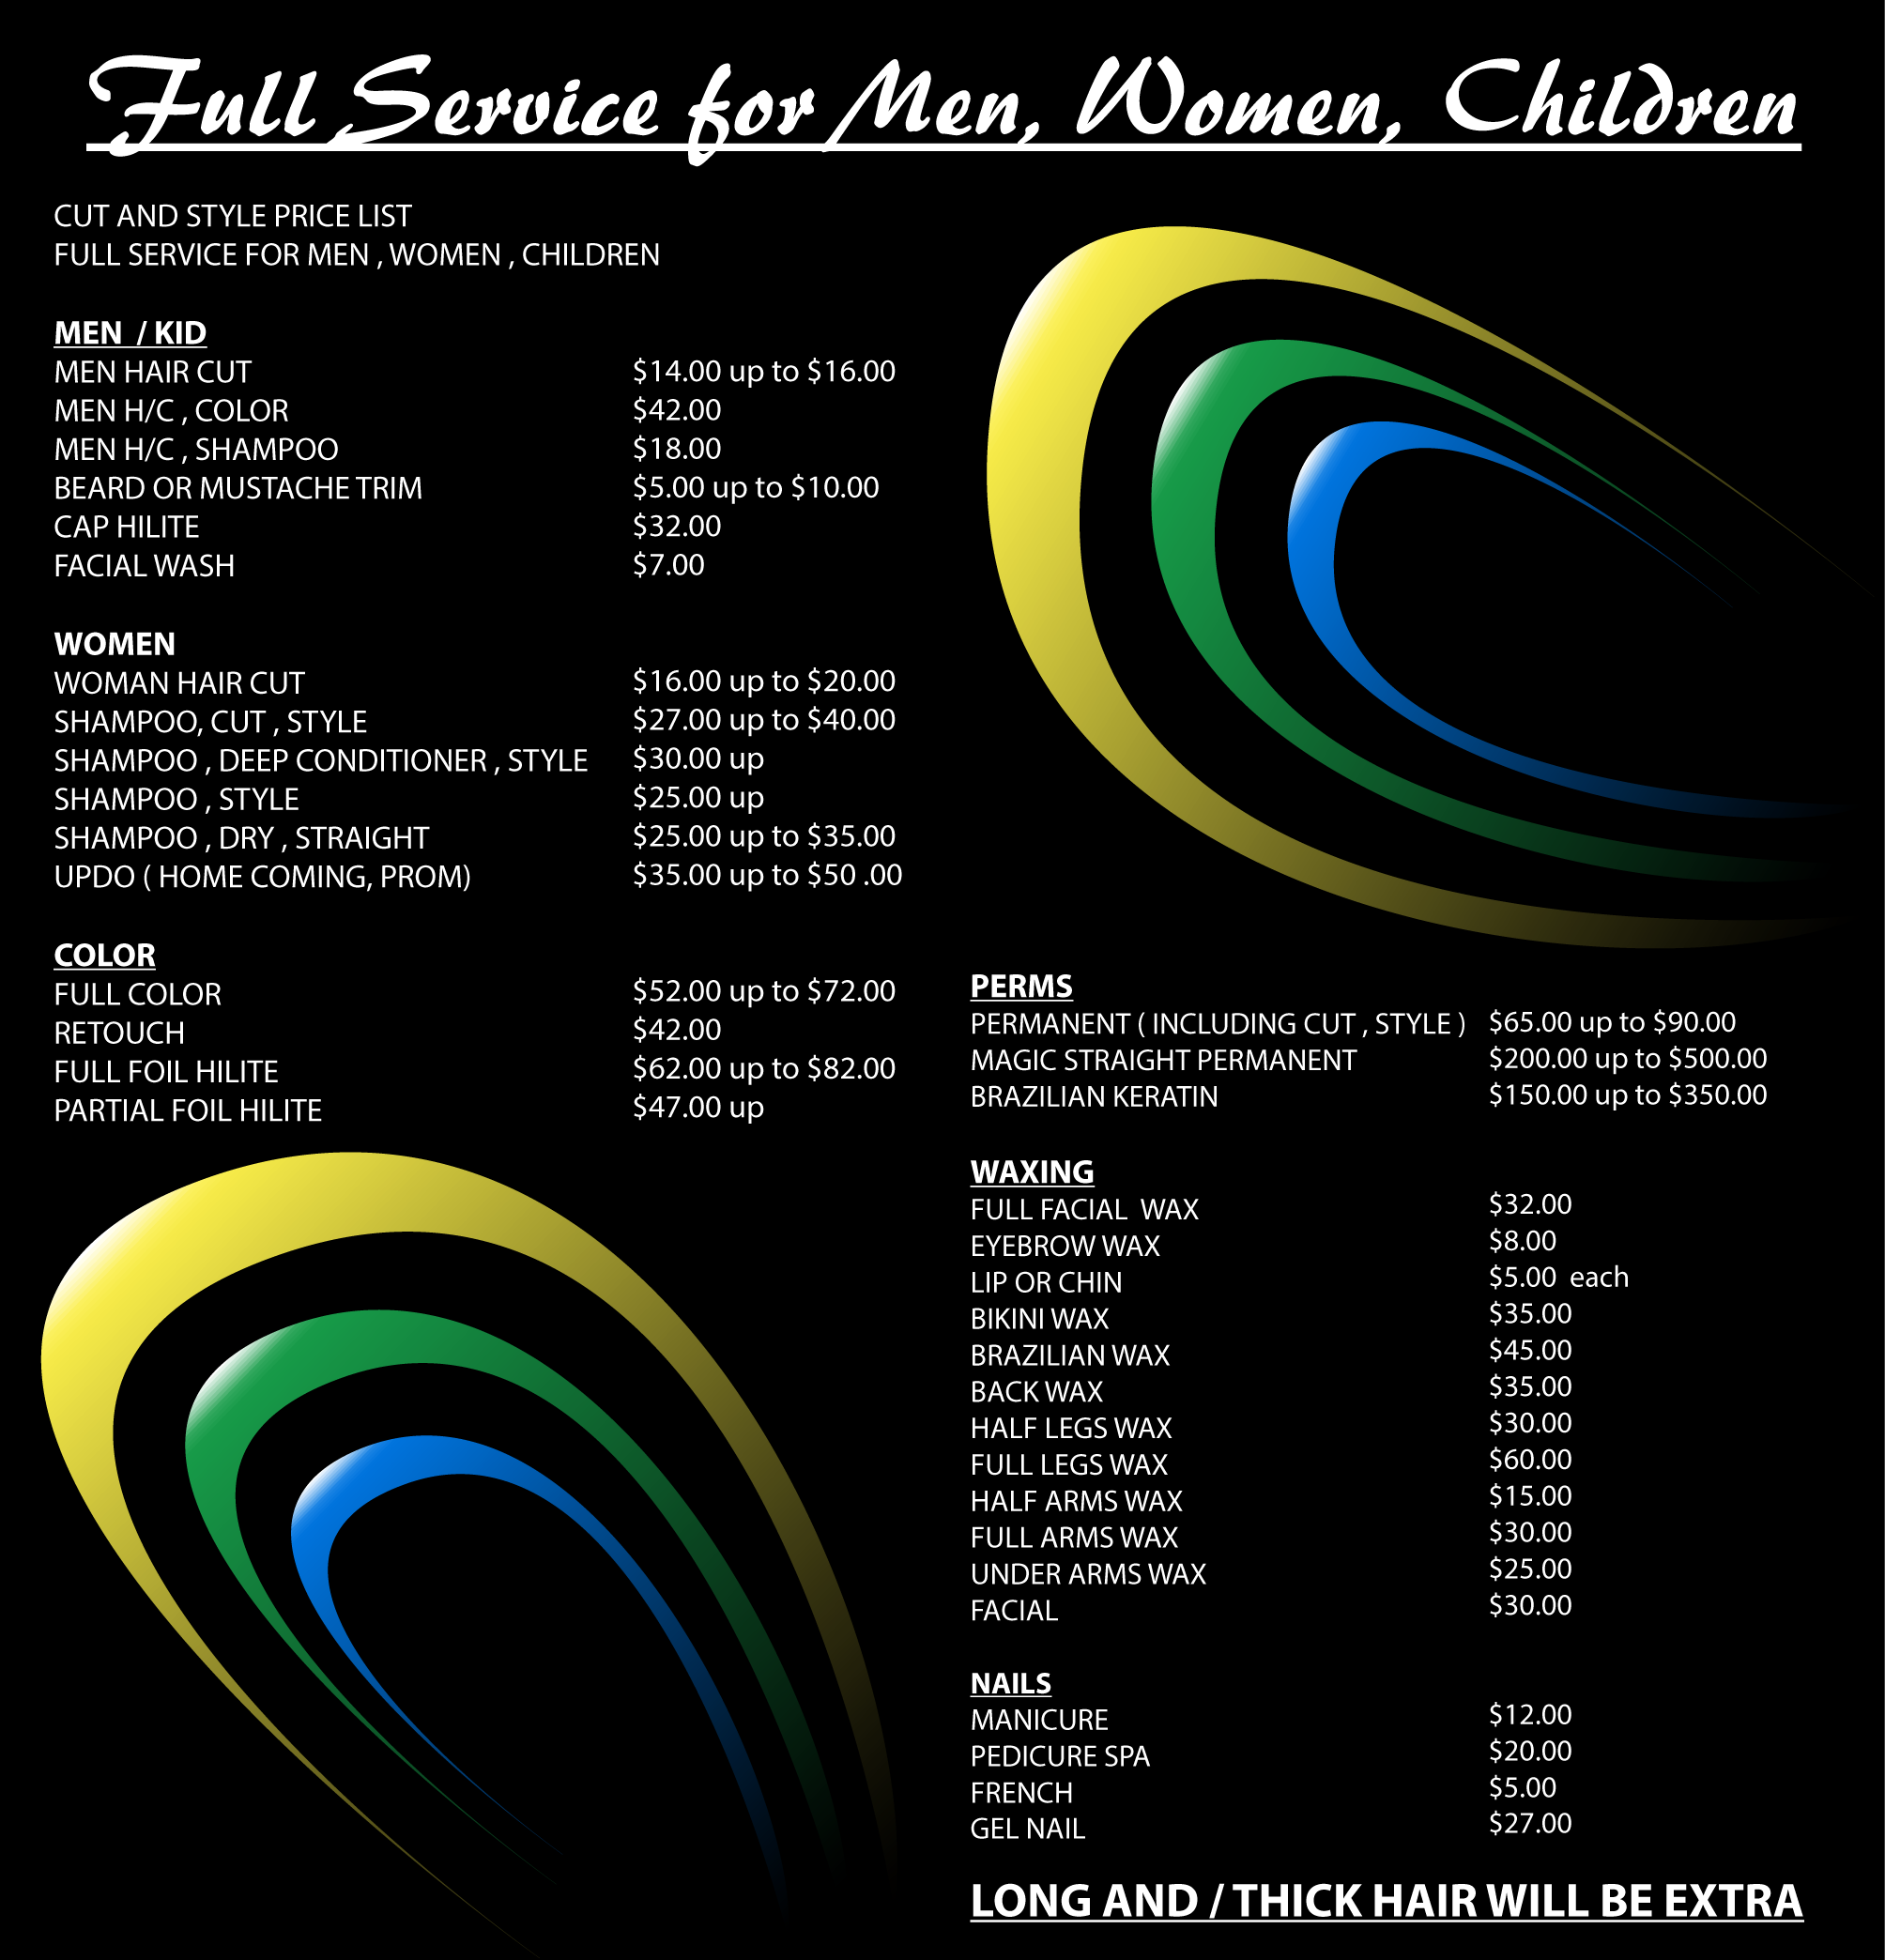 Services Pricing Cut Style Hair Salon